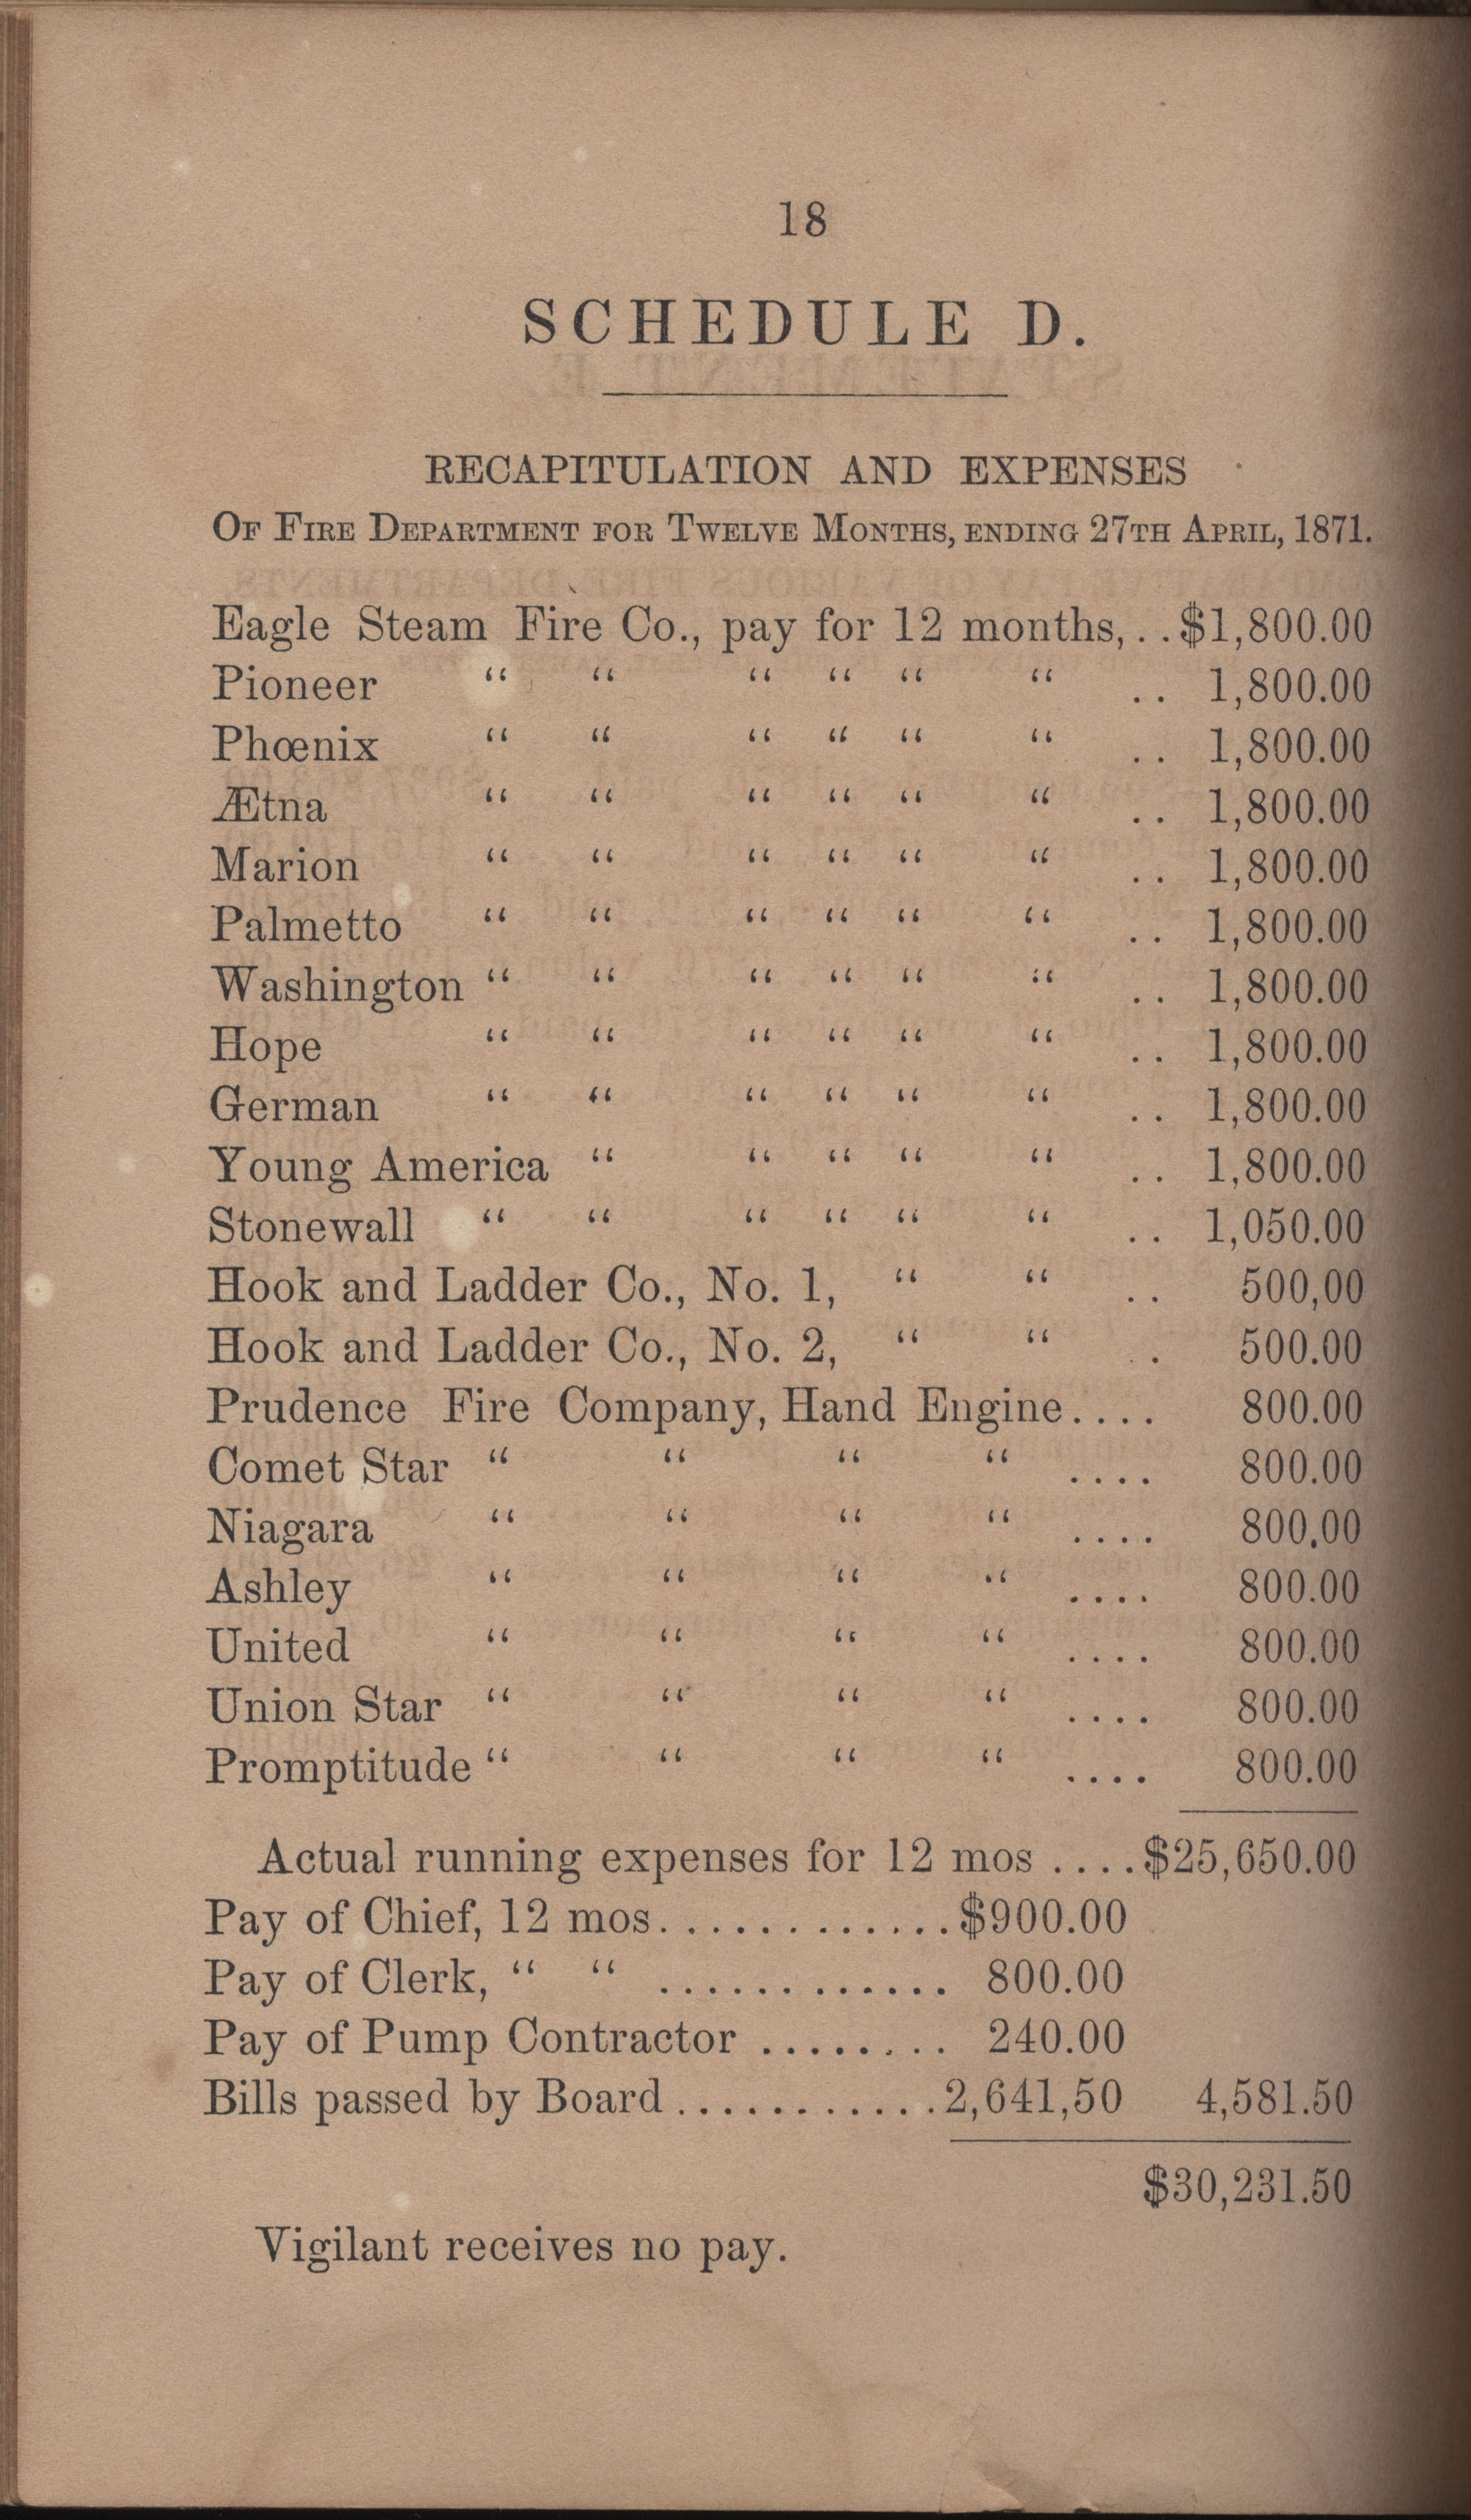 Annual Report of the Chief of the Fire Department of the City of Charleston, page 365